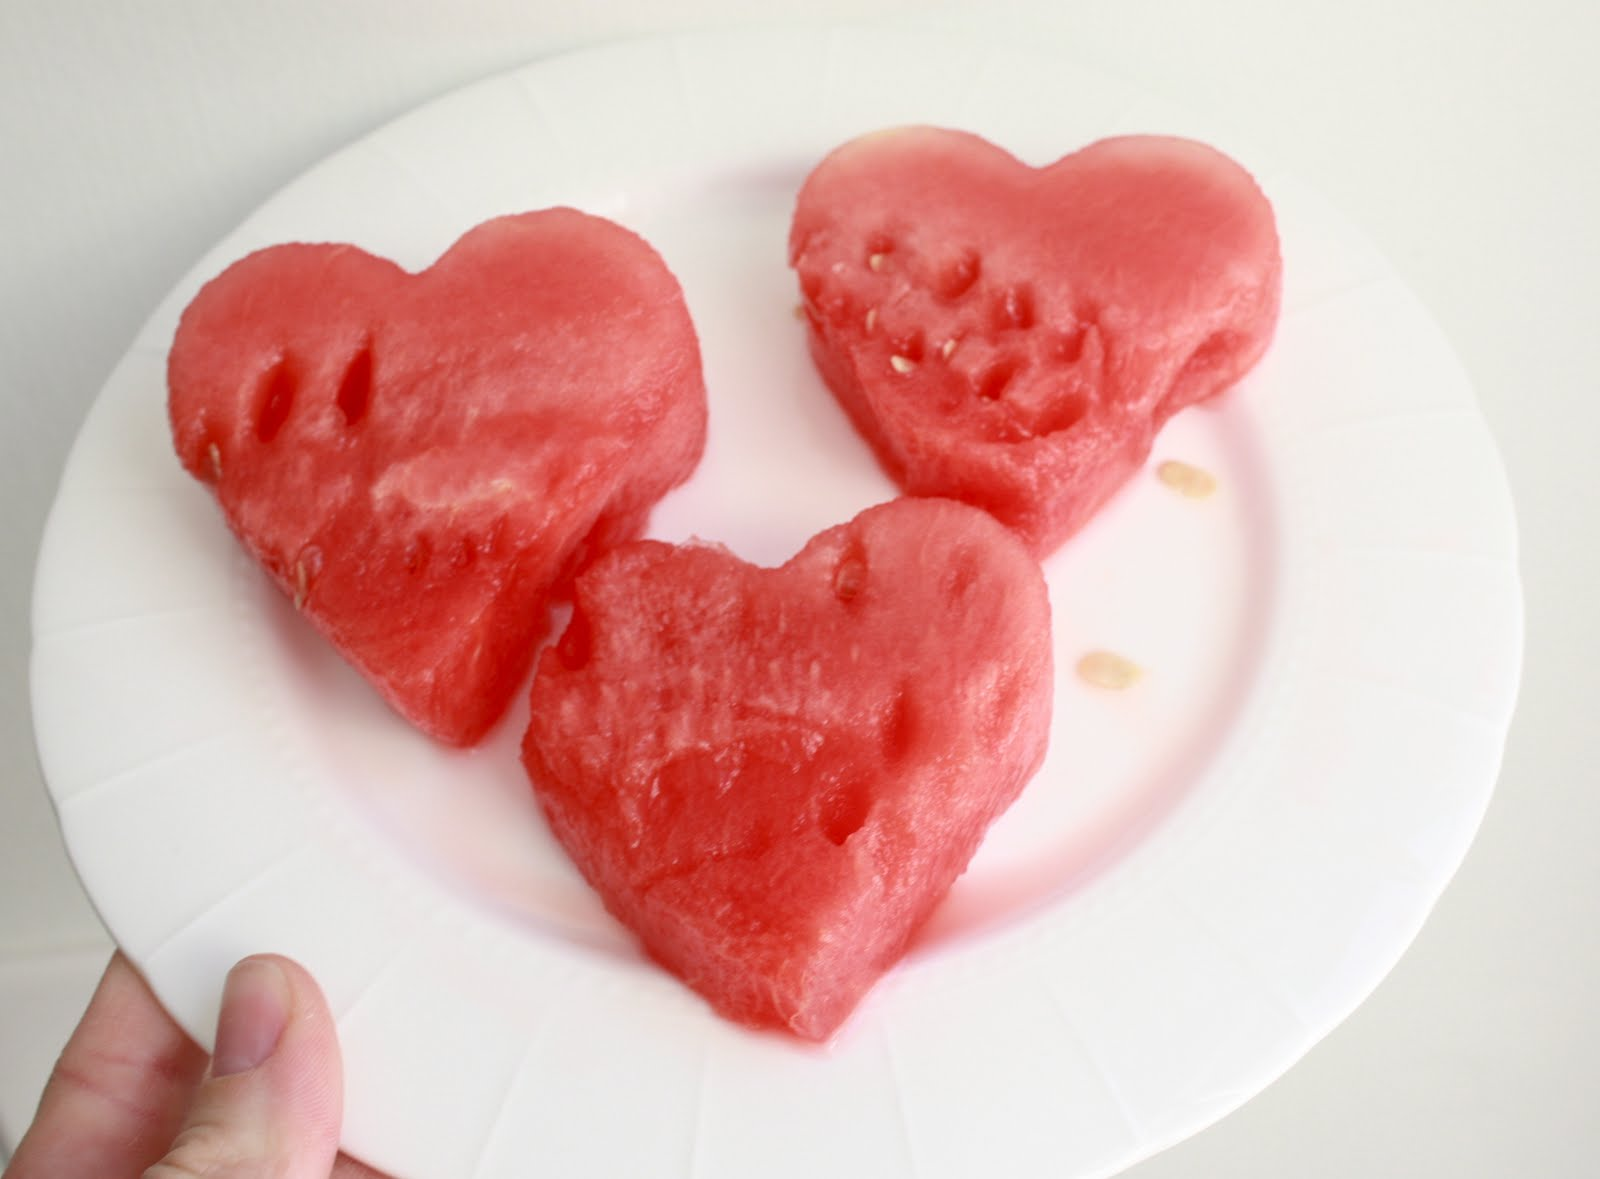 Heart Shaped Whole Wheat Pancakes with Strawberry Sauce